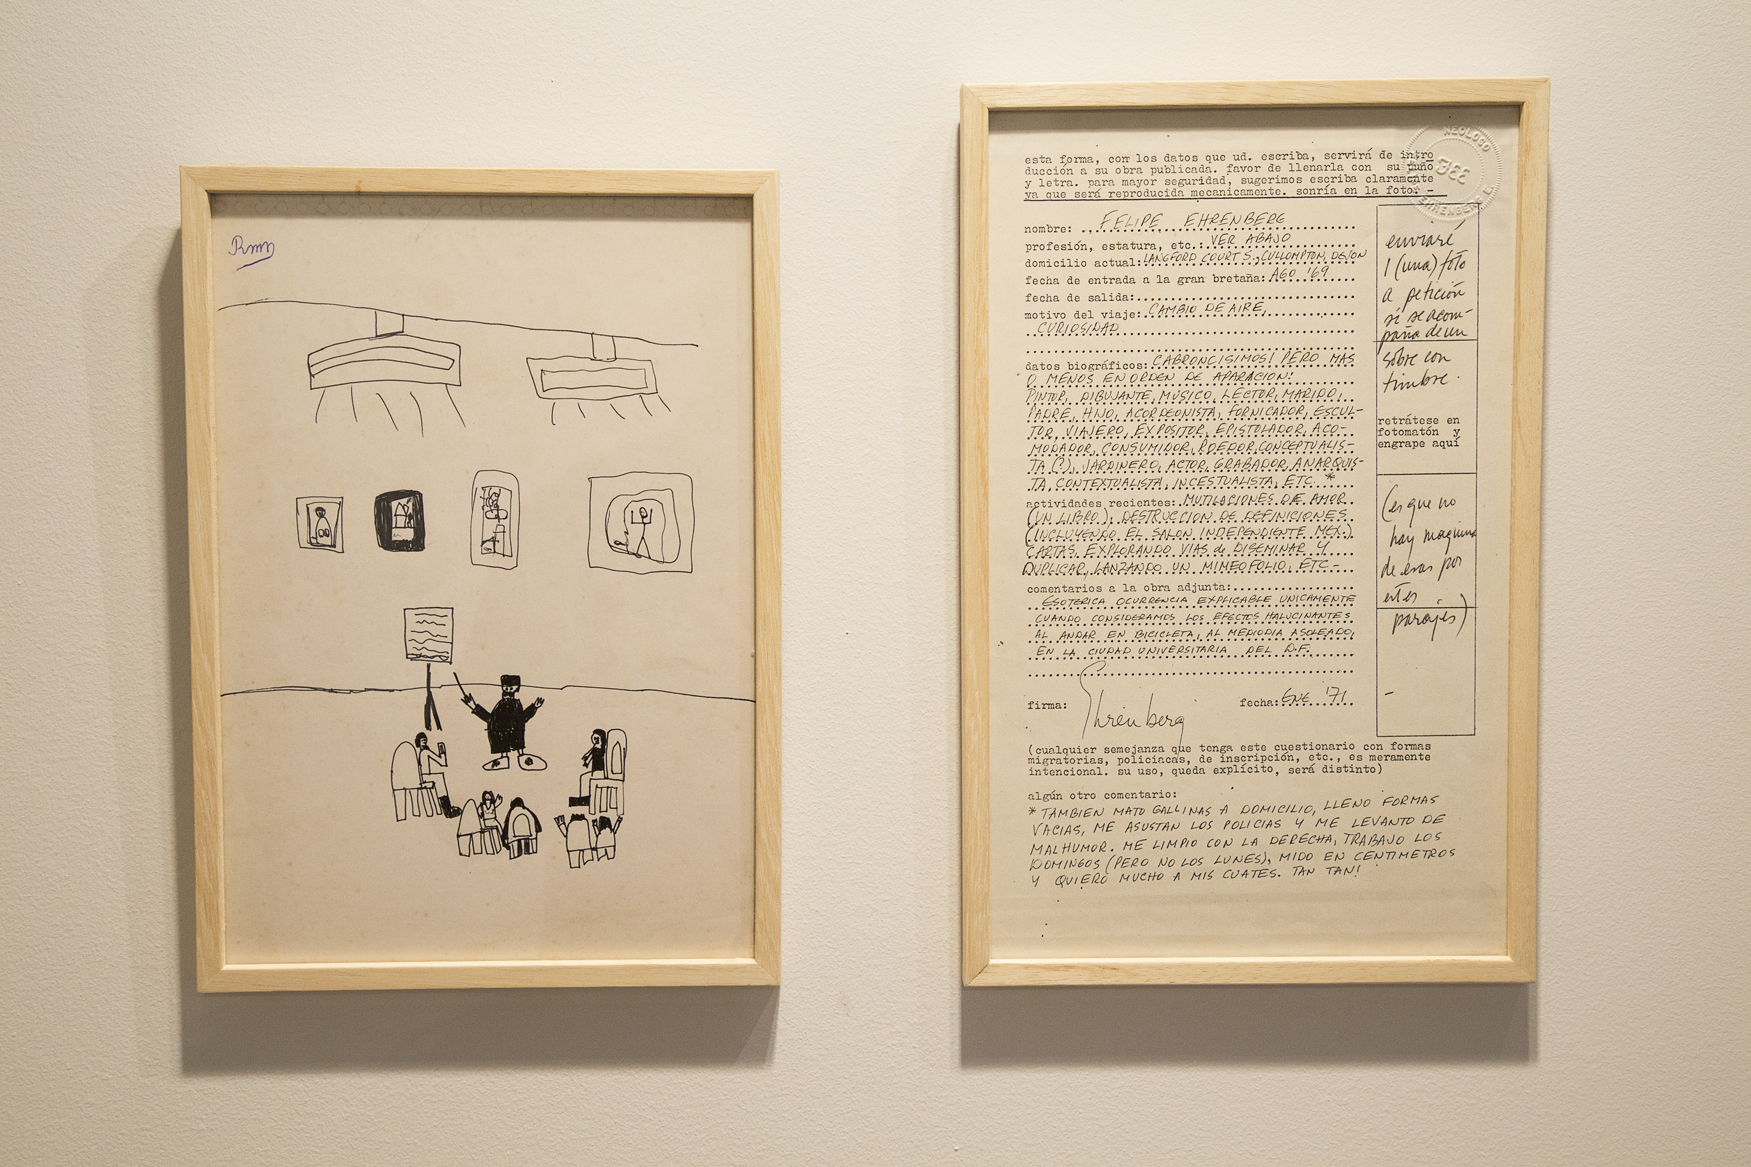 """Form"". 1971. ""Child's drawing"". 1992. Diptych: Printing photocopy on paper and original ink writing. 33 x 20.5 cm. Anonymous original drawing, signed R.M. , pen on paper. 29 x 20.5 cm"